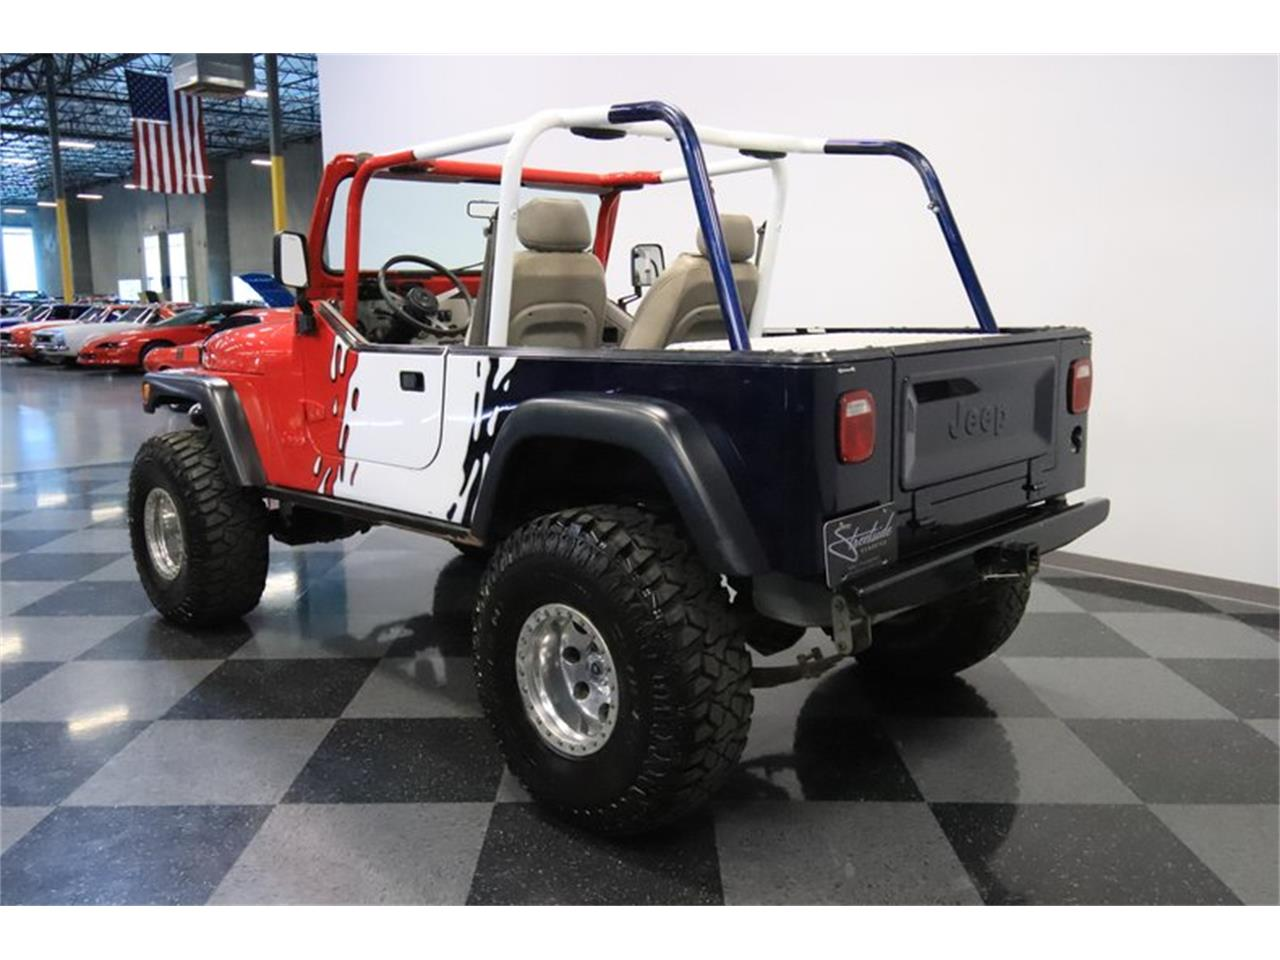 Large Picture of 1983 Jeep CJ8 Scrambler located in Mesa Arizona Offered by Streetside Classics - Phoenix - Q5HM